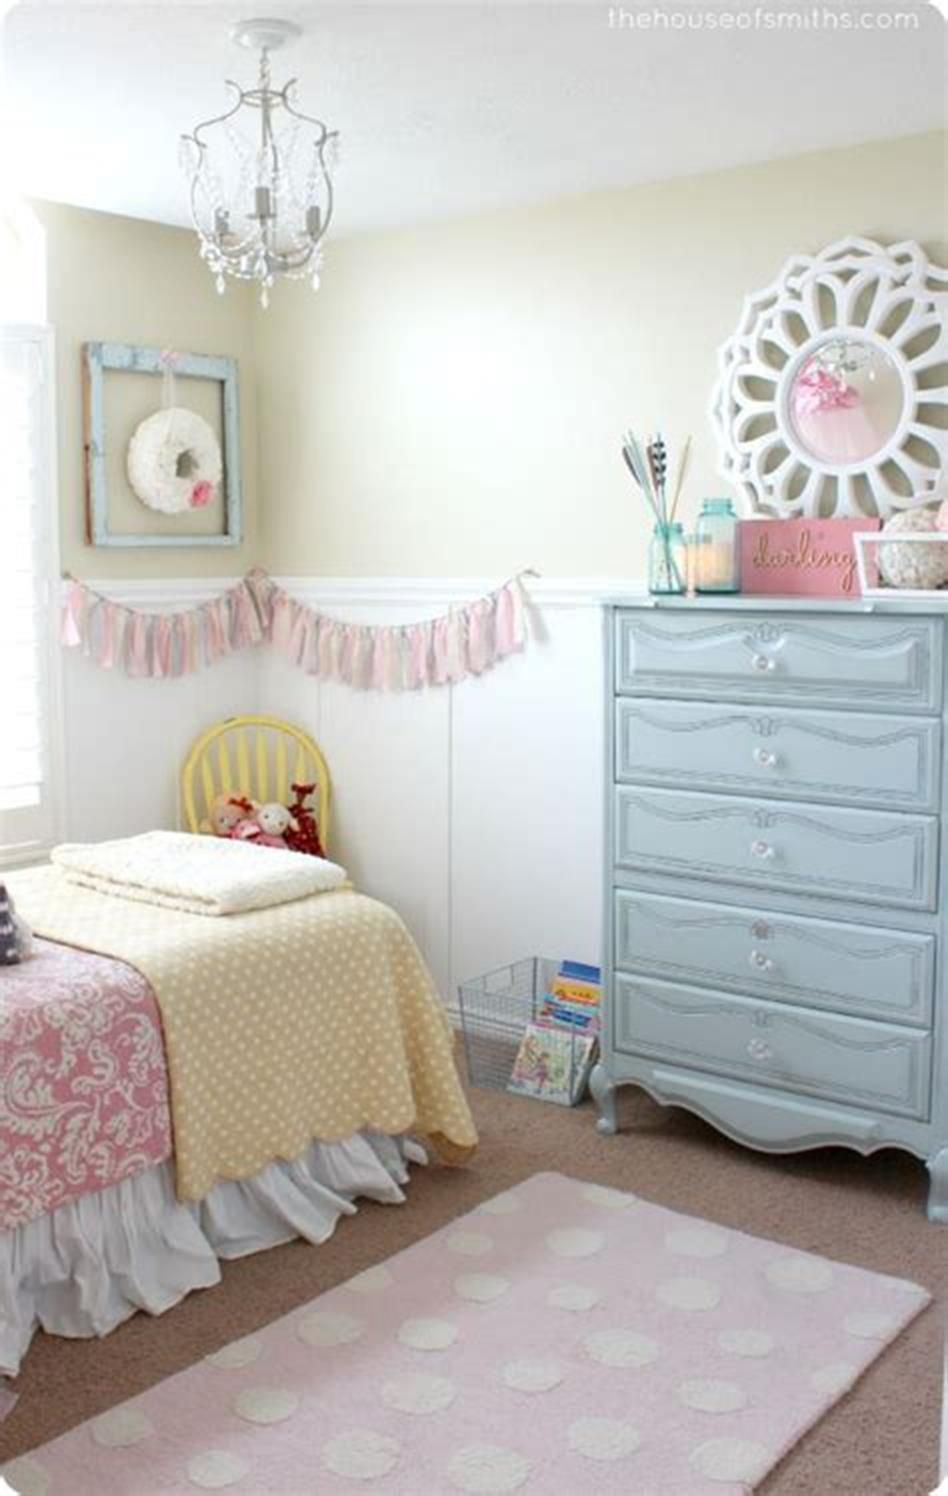 45 Beautiful Little Girls Bedroom Decorating and Design